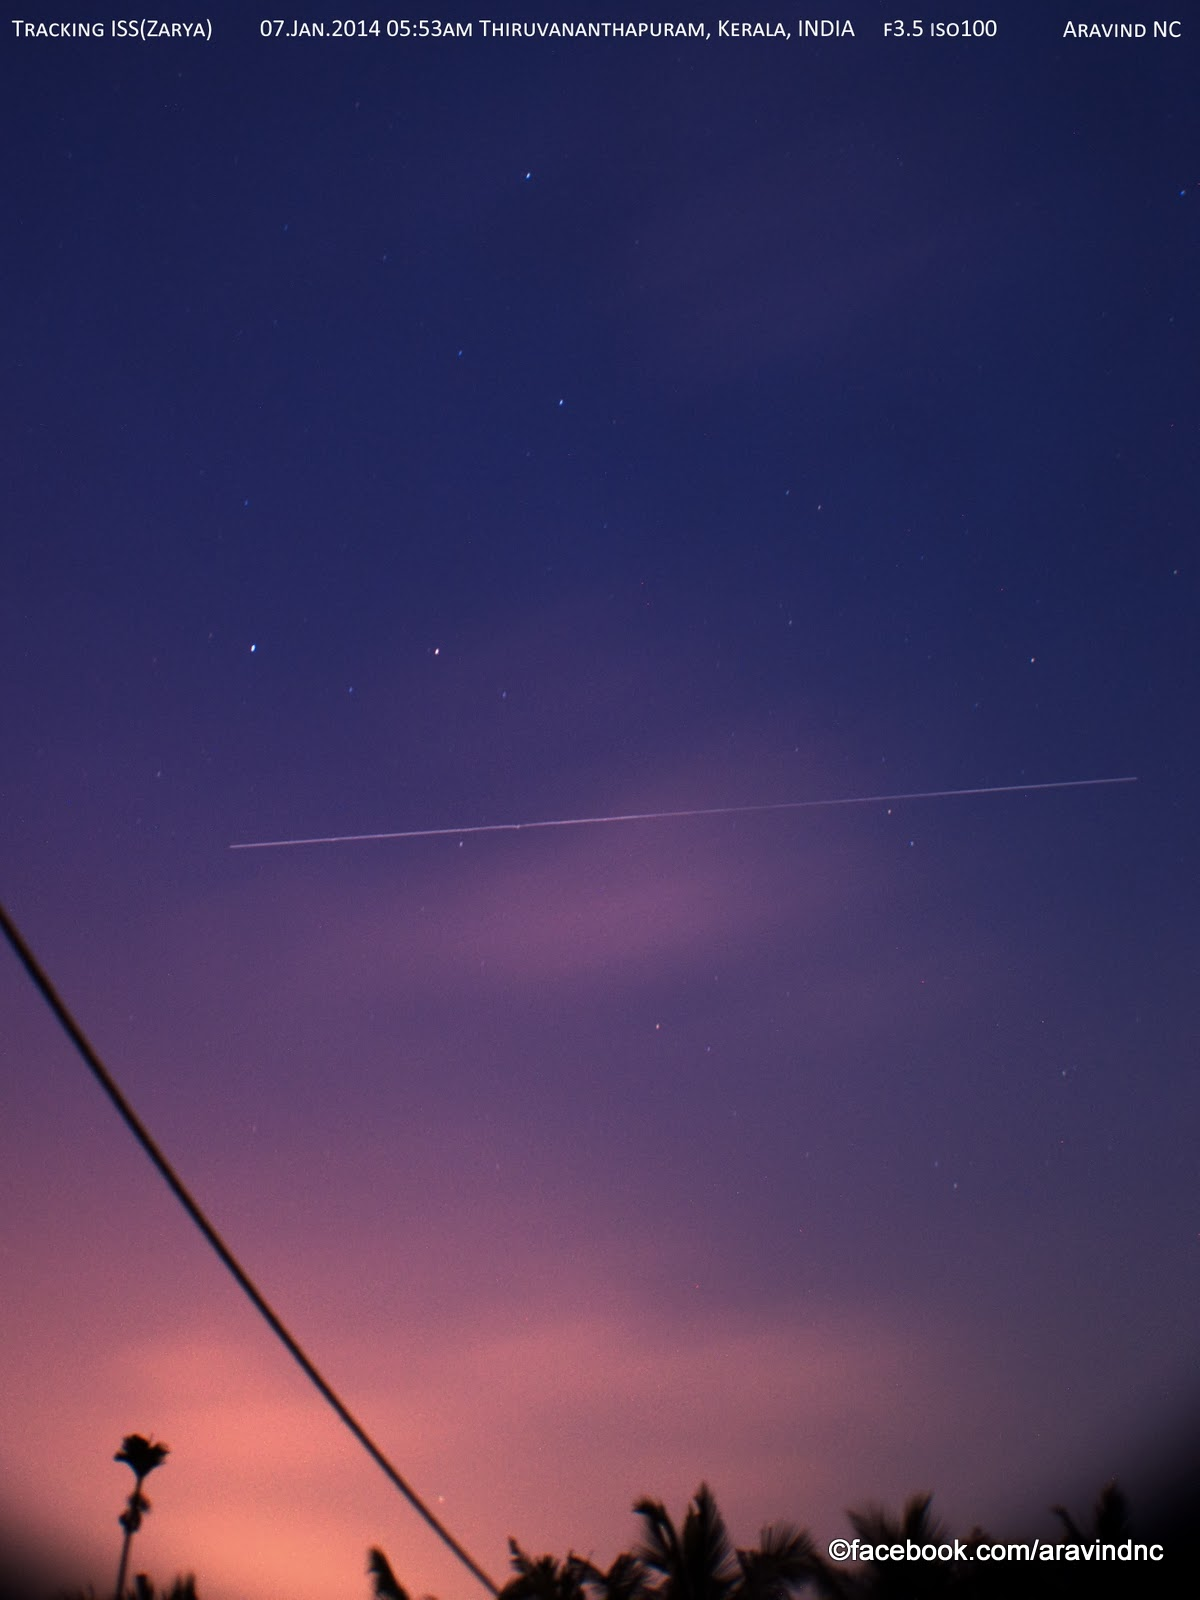 International Space Station Sighting Times - Pics about space